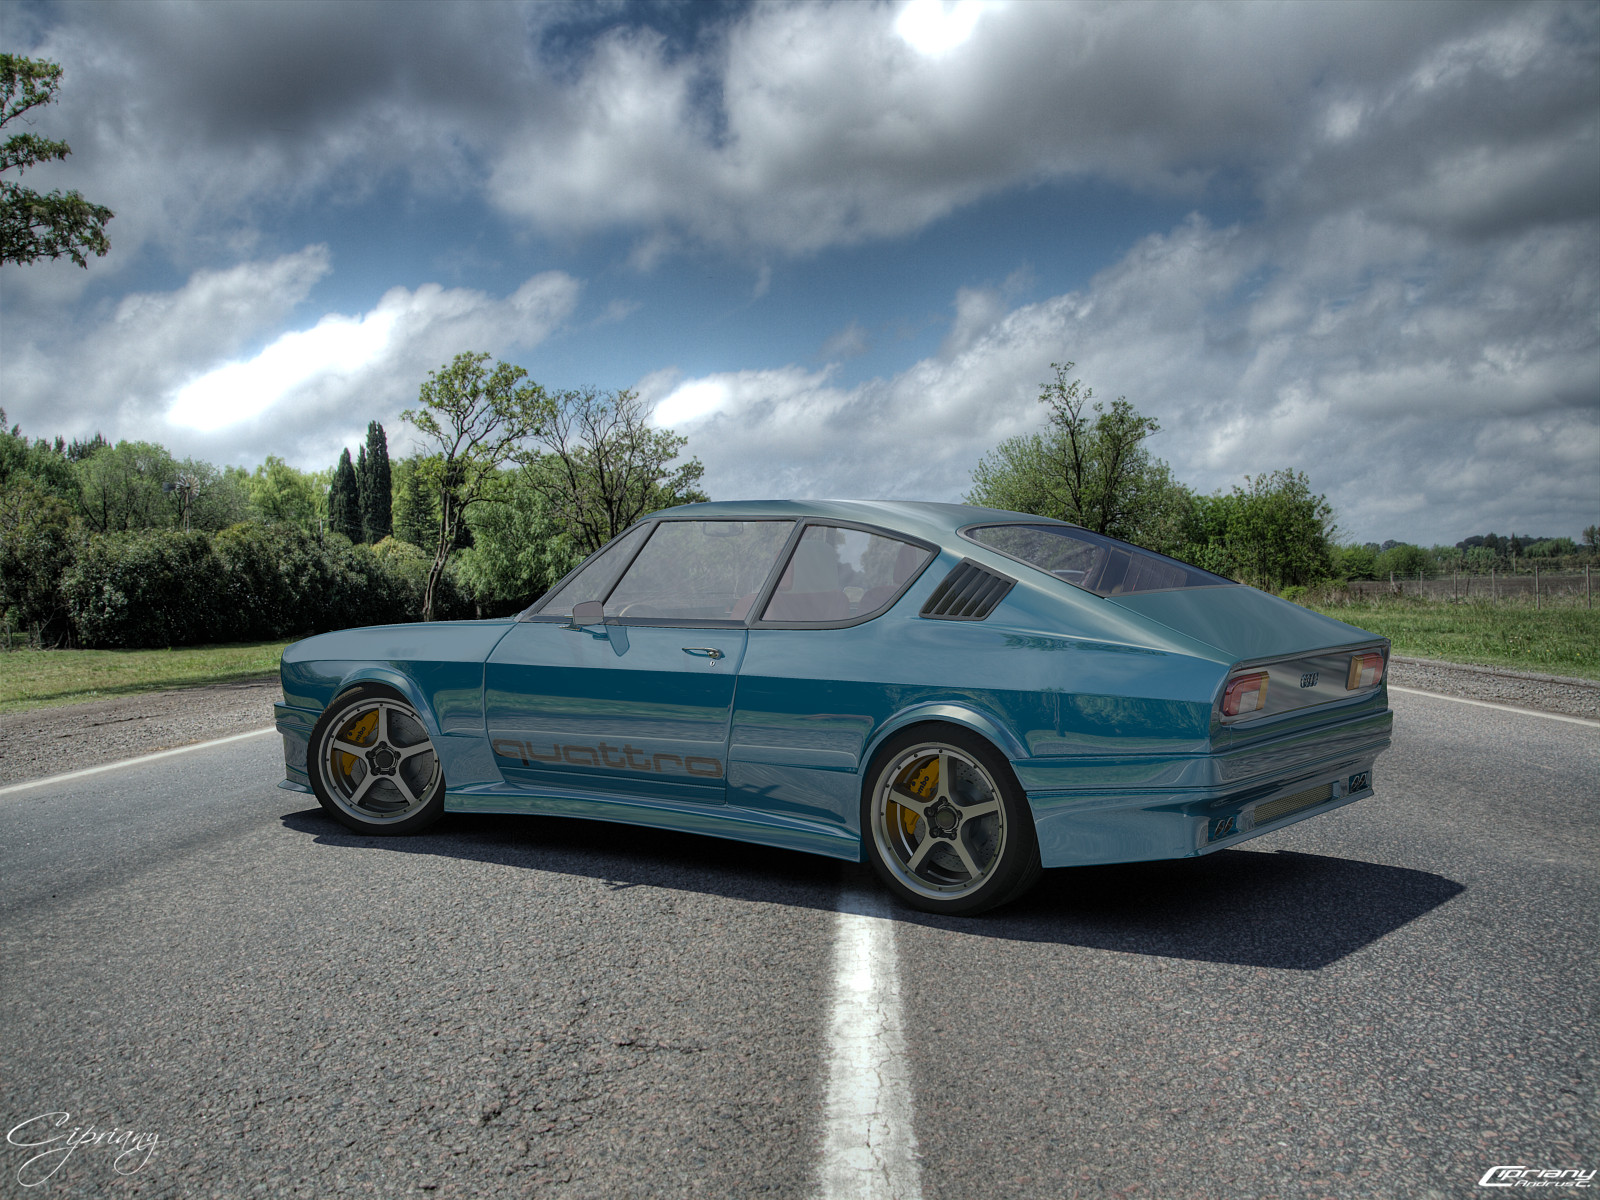 Audi 100 Coupe S Tuned 2 By Cipriany On DeviantArt